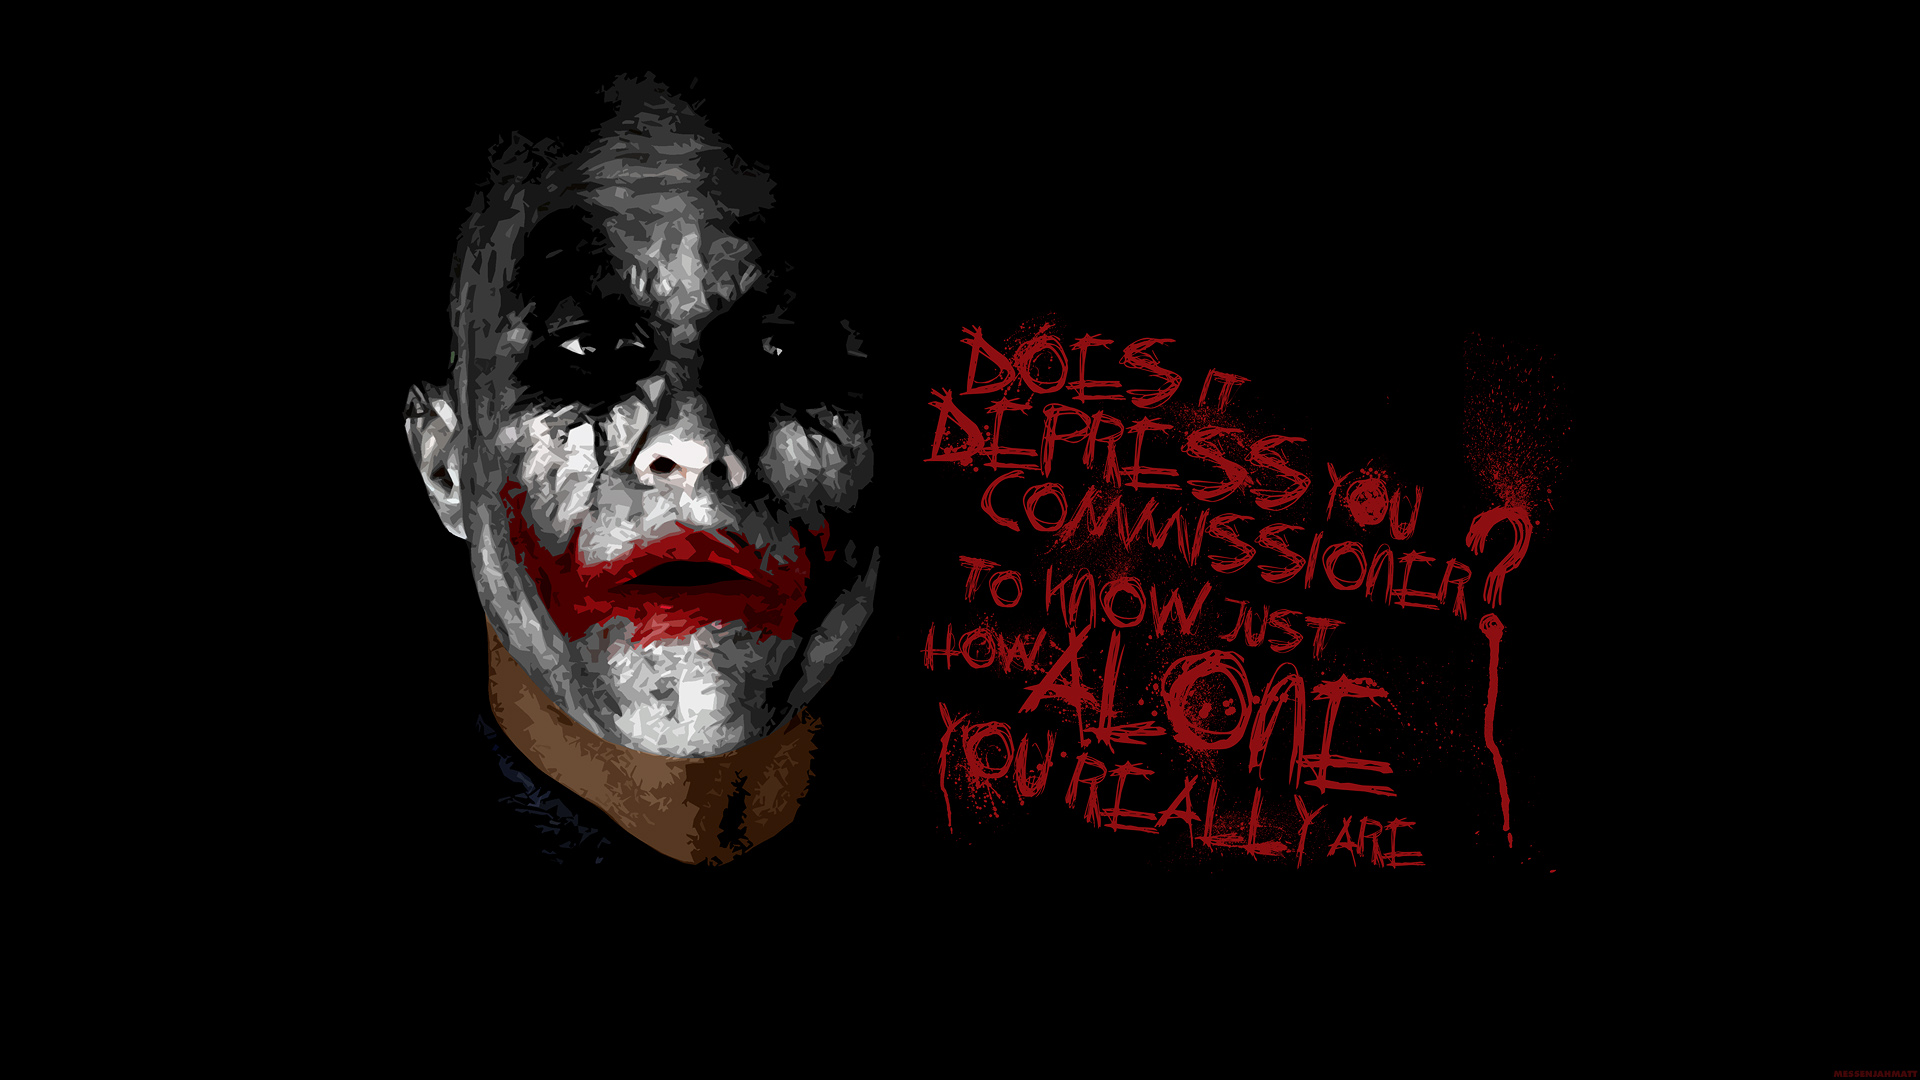 Batman Movie Wallpapers Joker HD wallpapers   Batman Movie Wallpapers 1920x1080